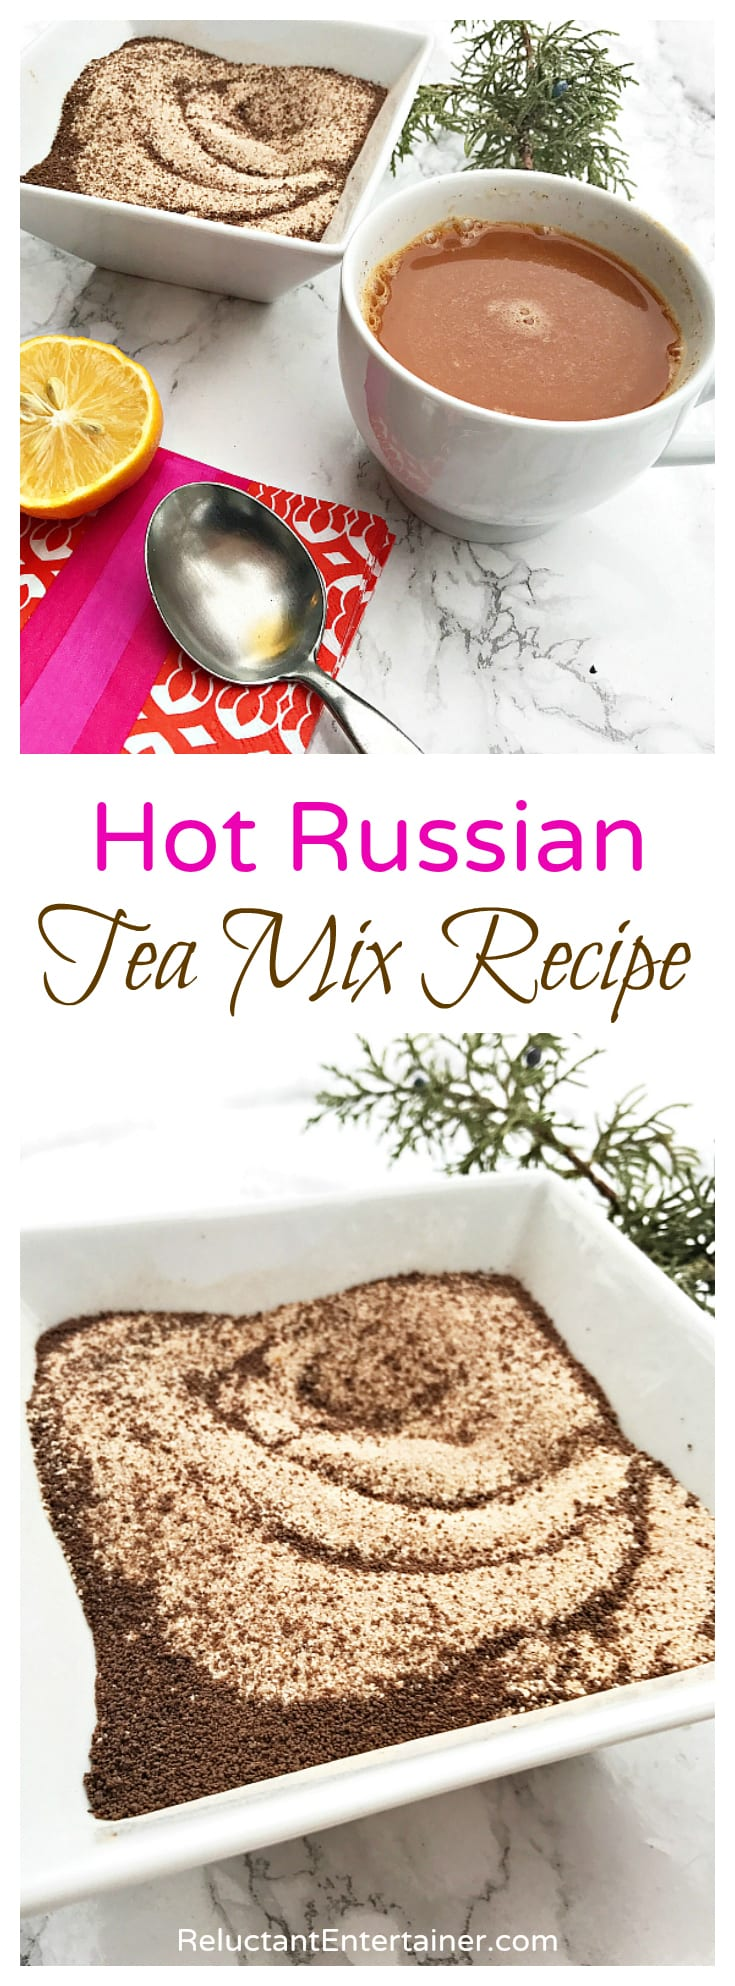 Hot Russian Tea Mix Recipe